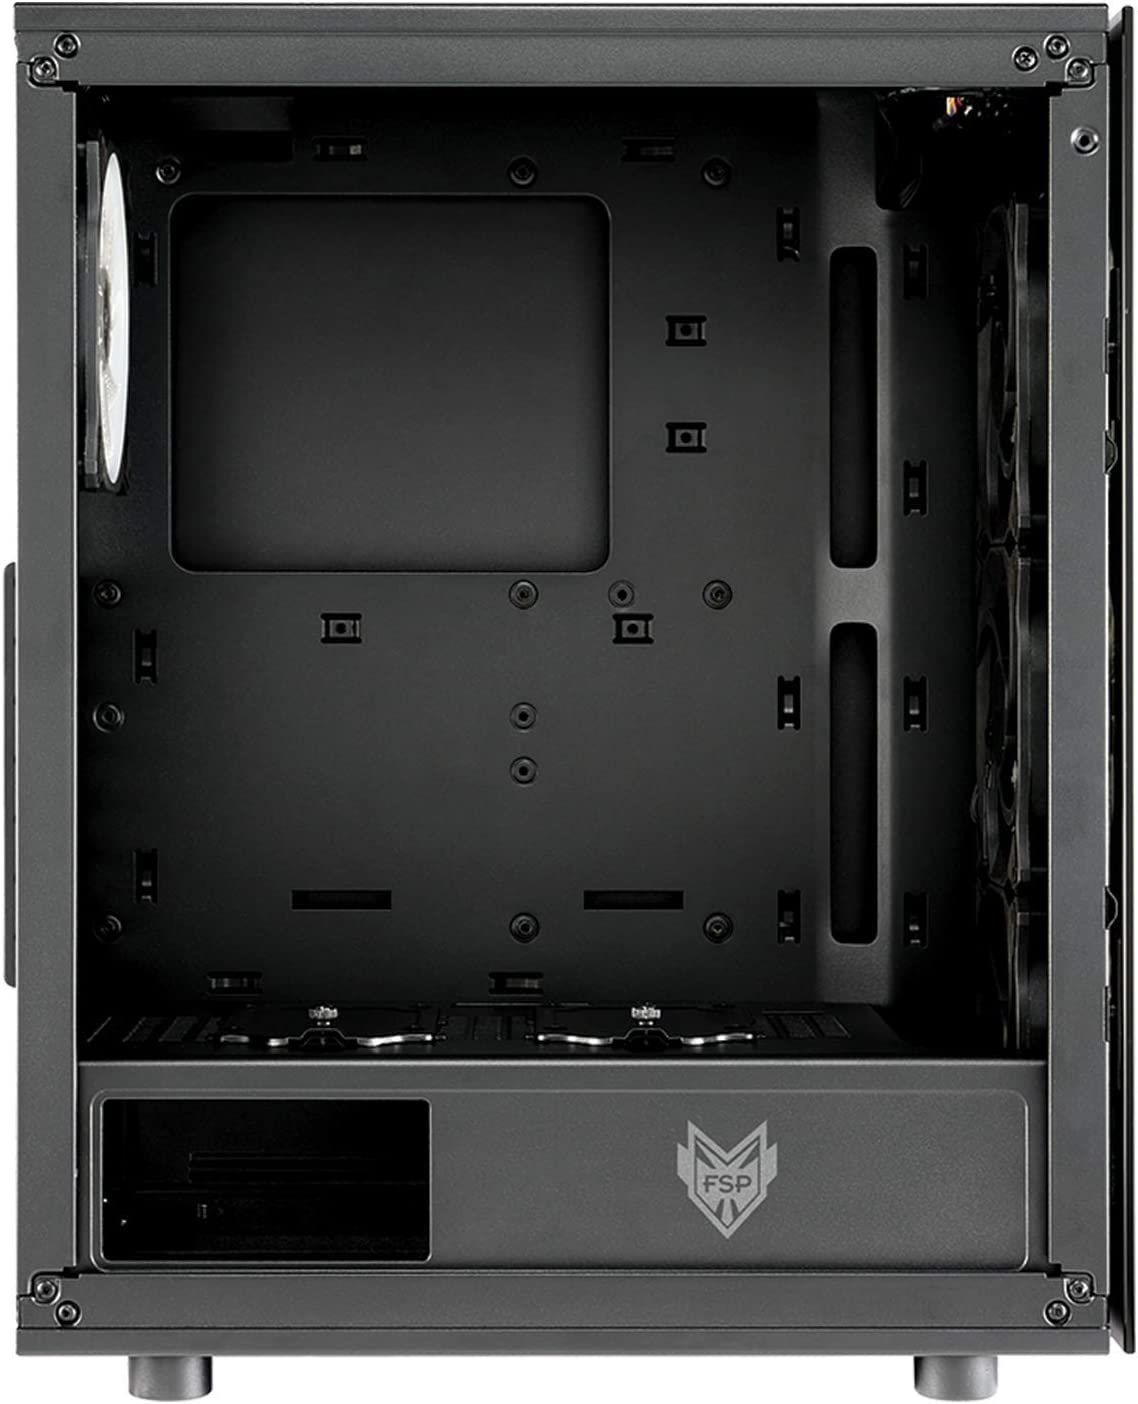 FSP ATX Mid Tower PC Computer Gaming Case with 2 Tempered Glass Panels with 4 Addressable RGB Fans CMT340